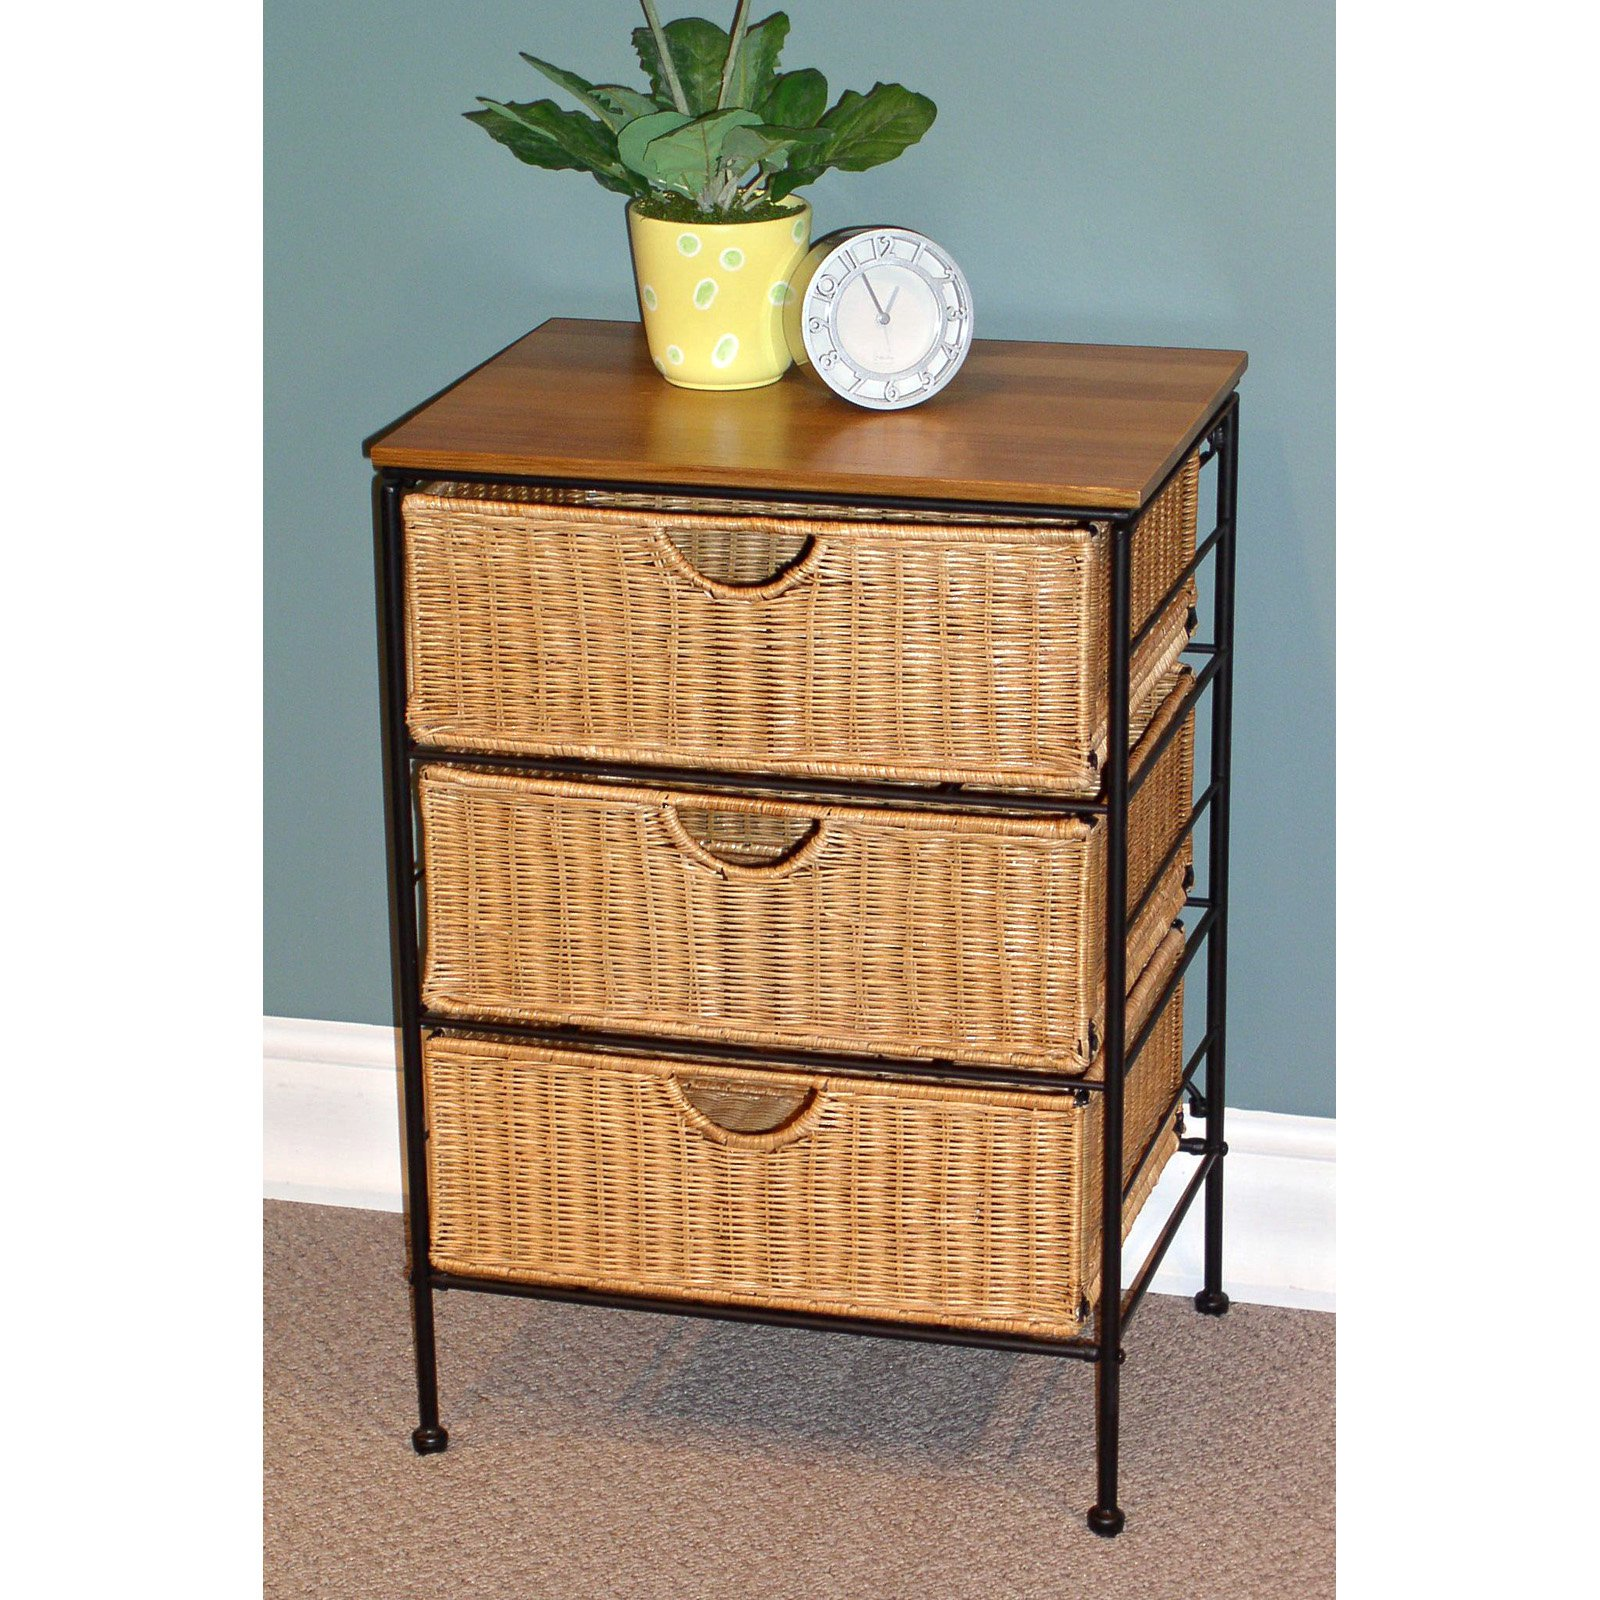 Three Drawer Chest, Wicker by 4D Concepts